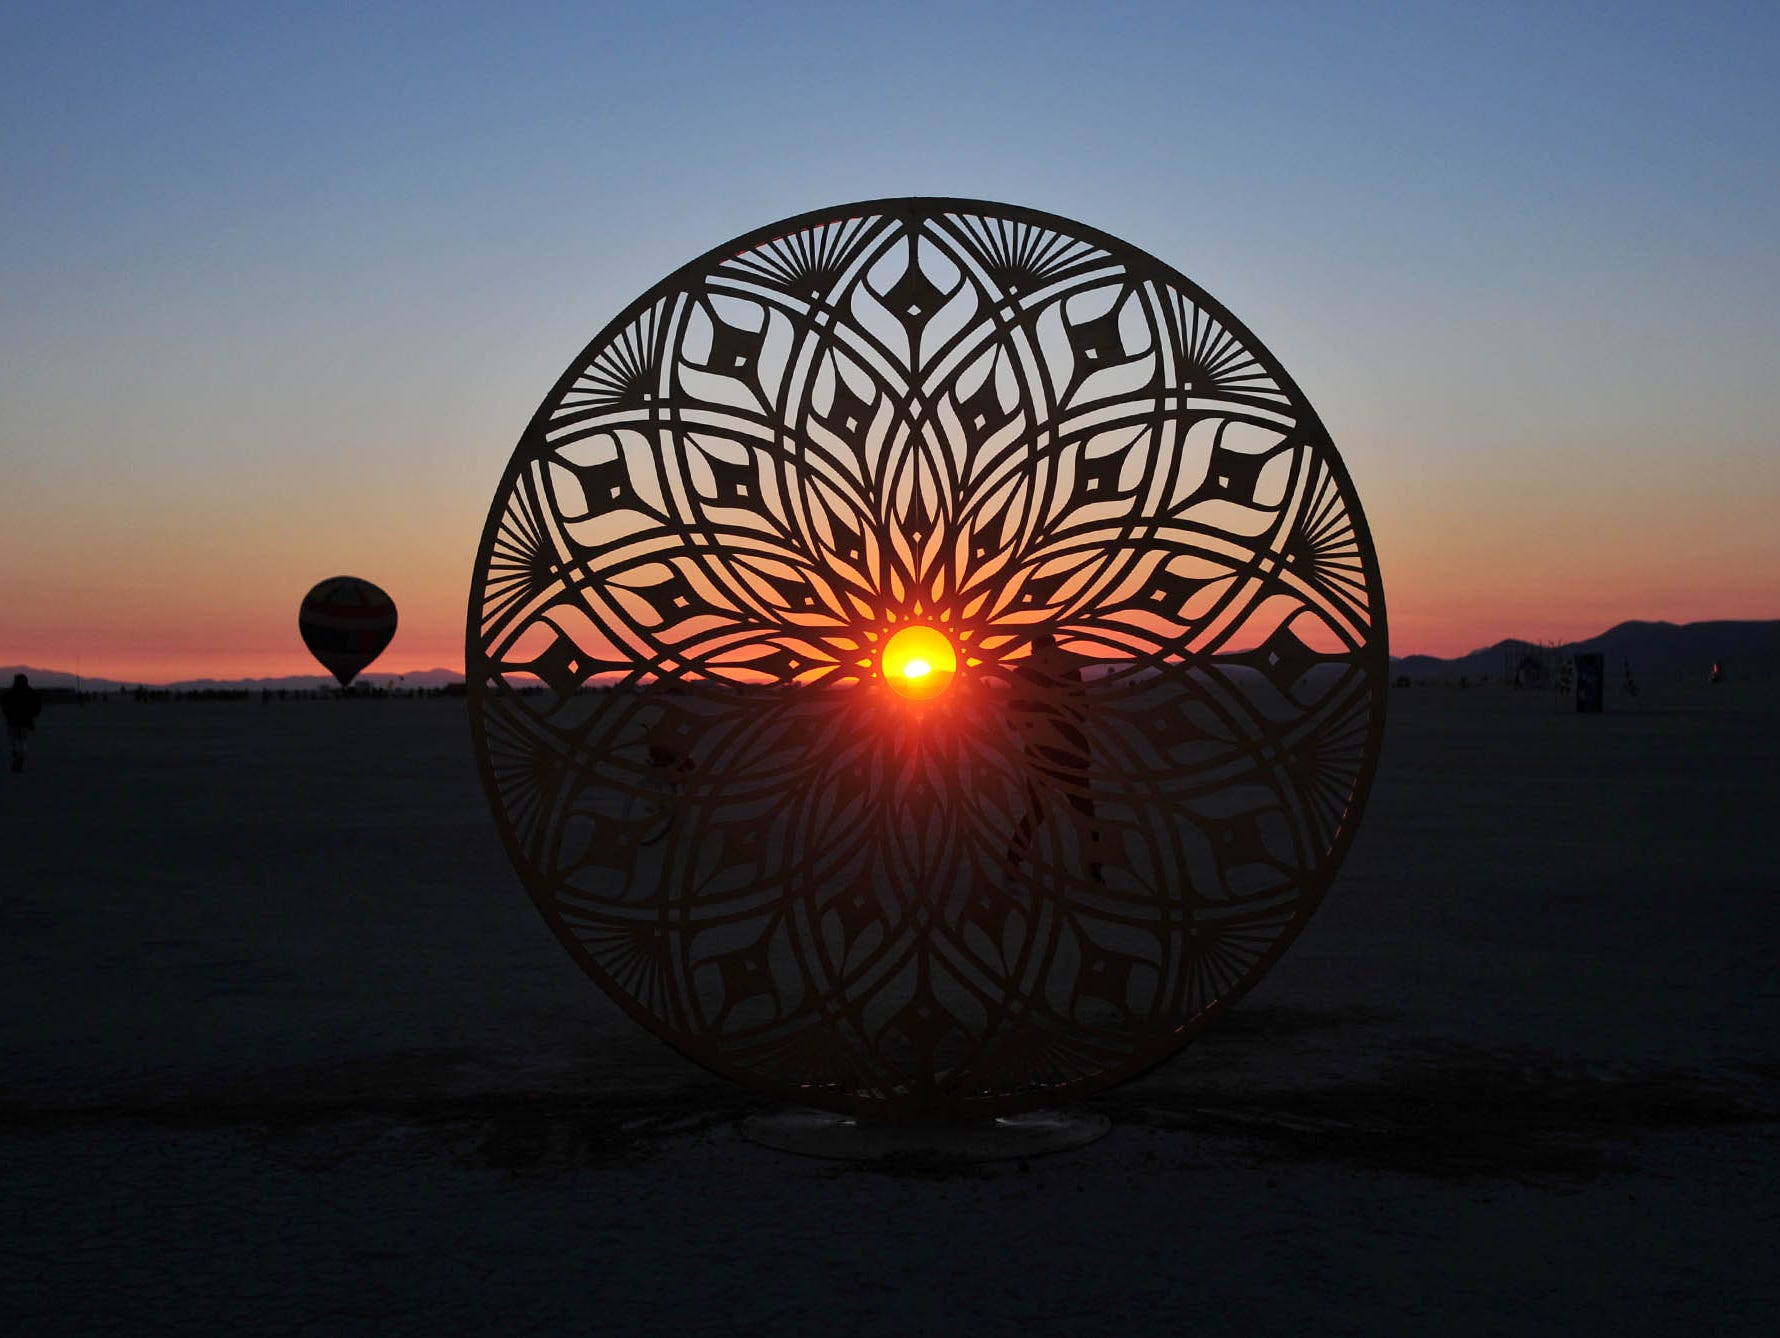 Images from sunrise at Burning Man on Tuesday August 28, 2018.